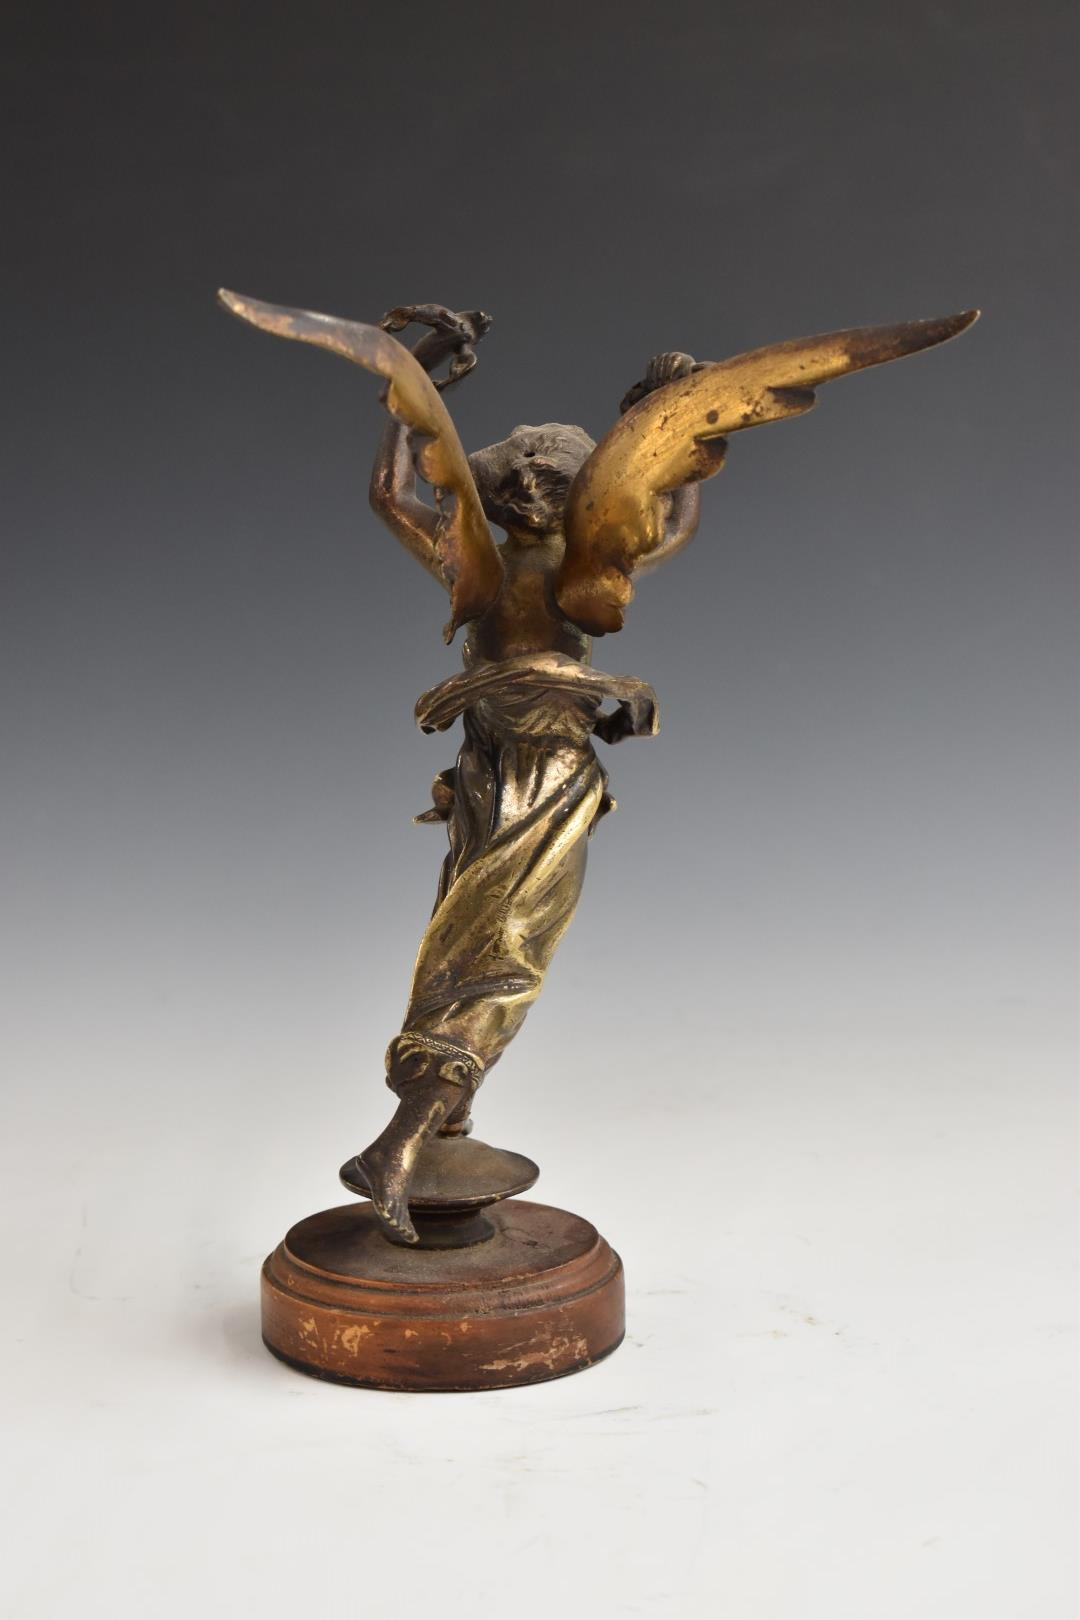 Bronzed winged lady with flowing robe, H 25cm, on turned wooden base, possibly originally a - Image 4 of 6